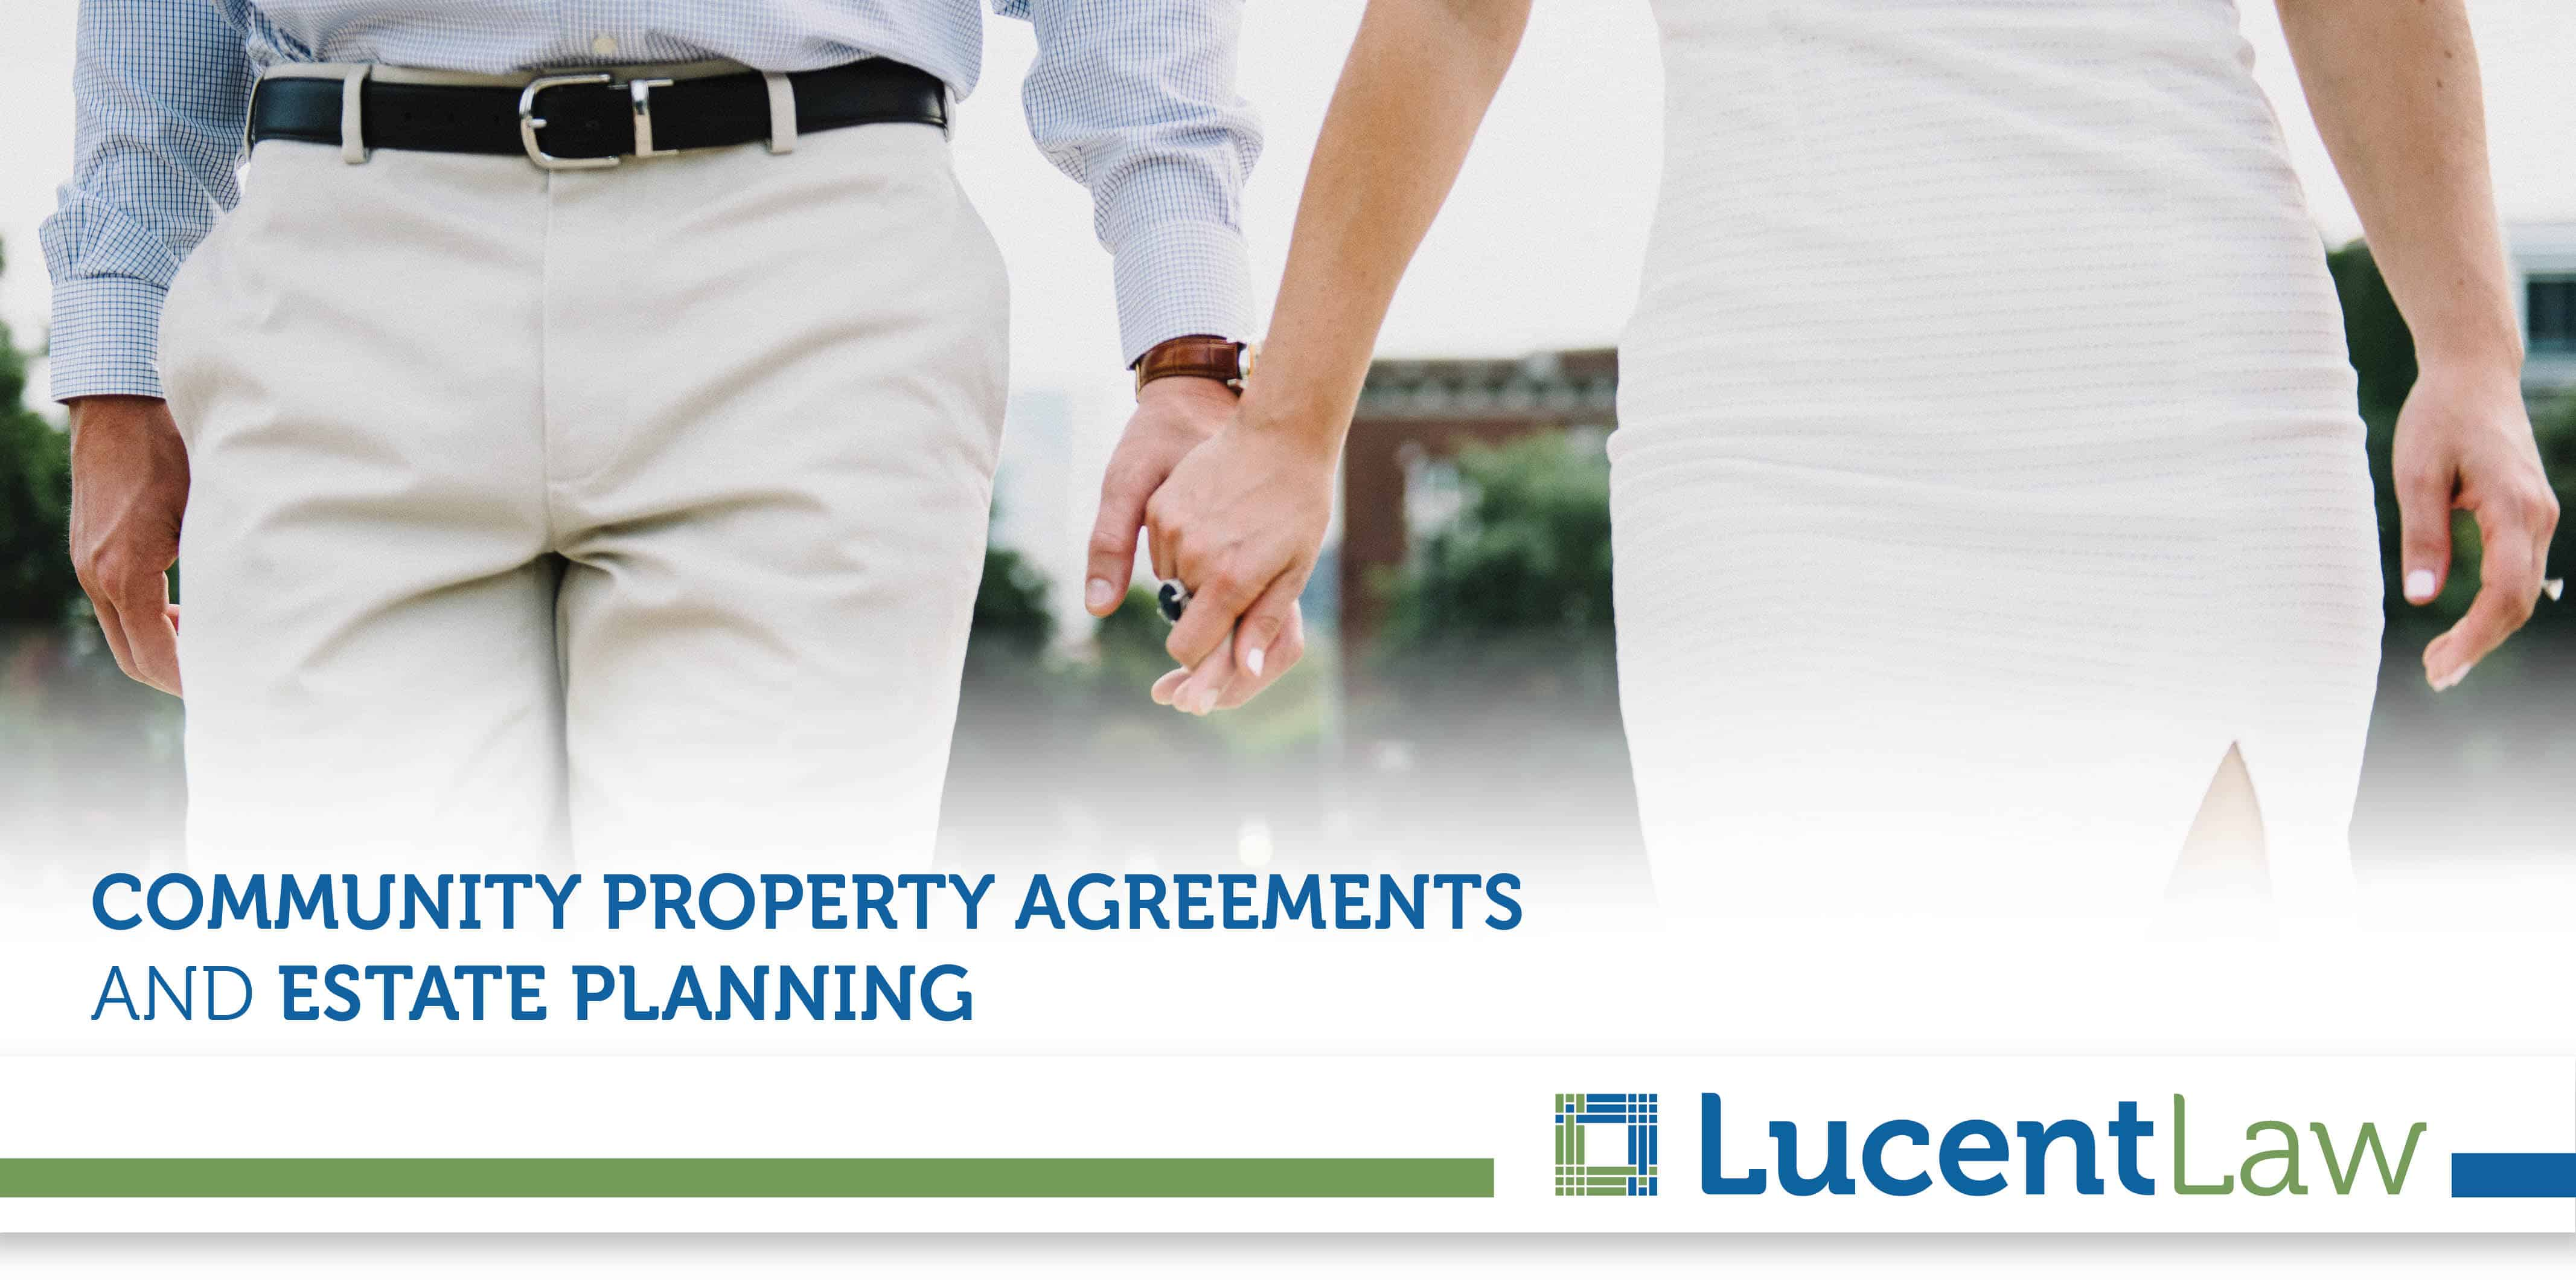 Community Property Agreements And Estate Planning